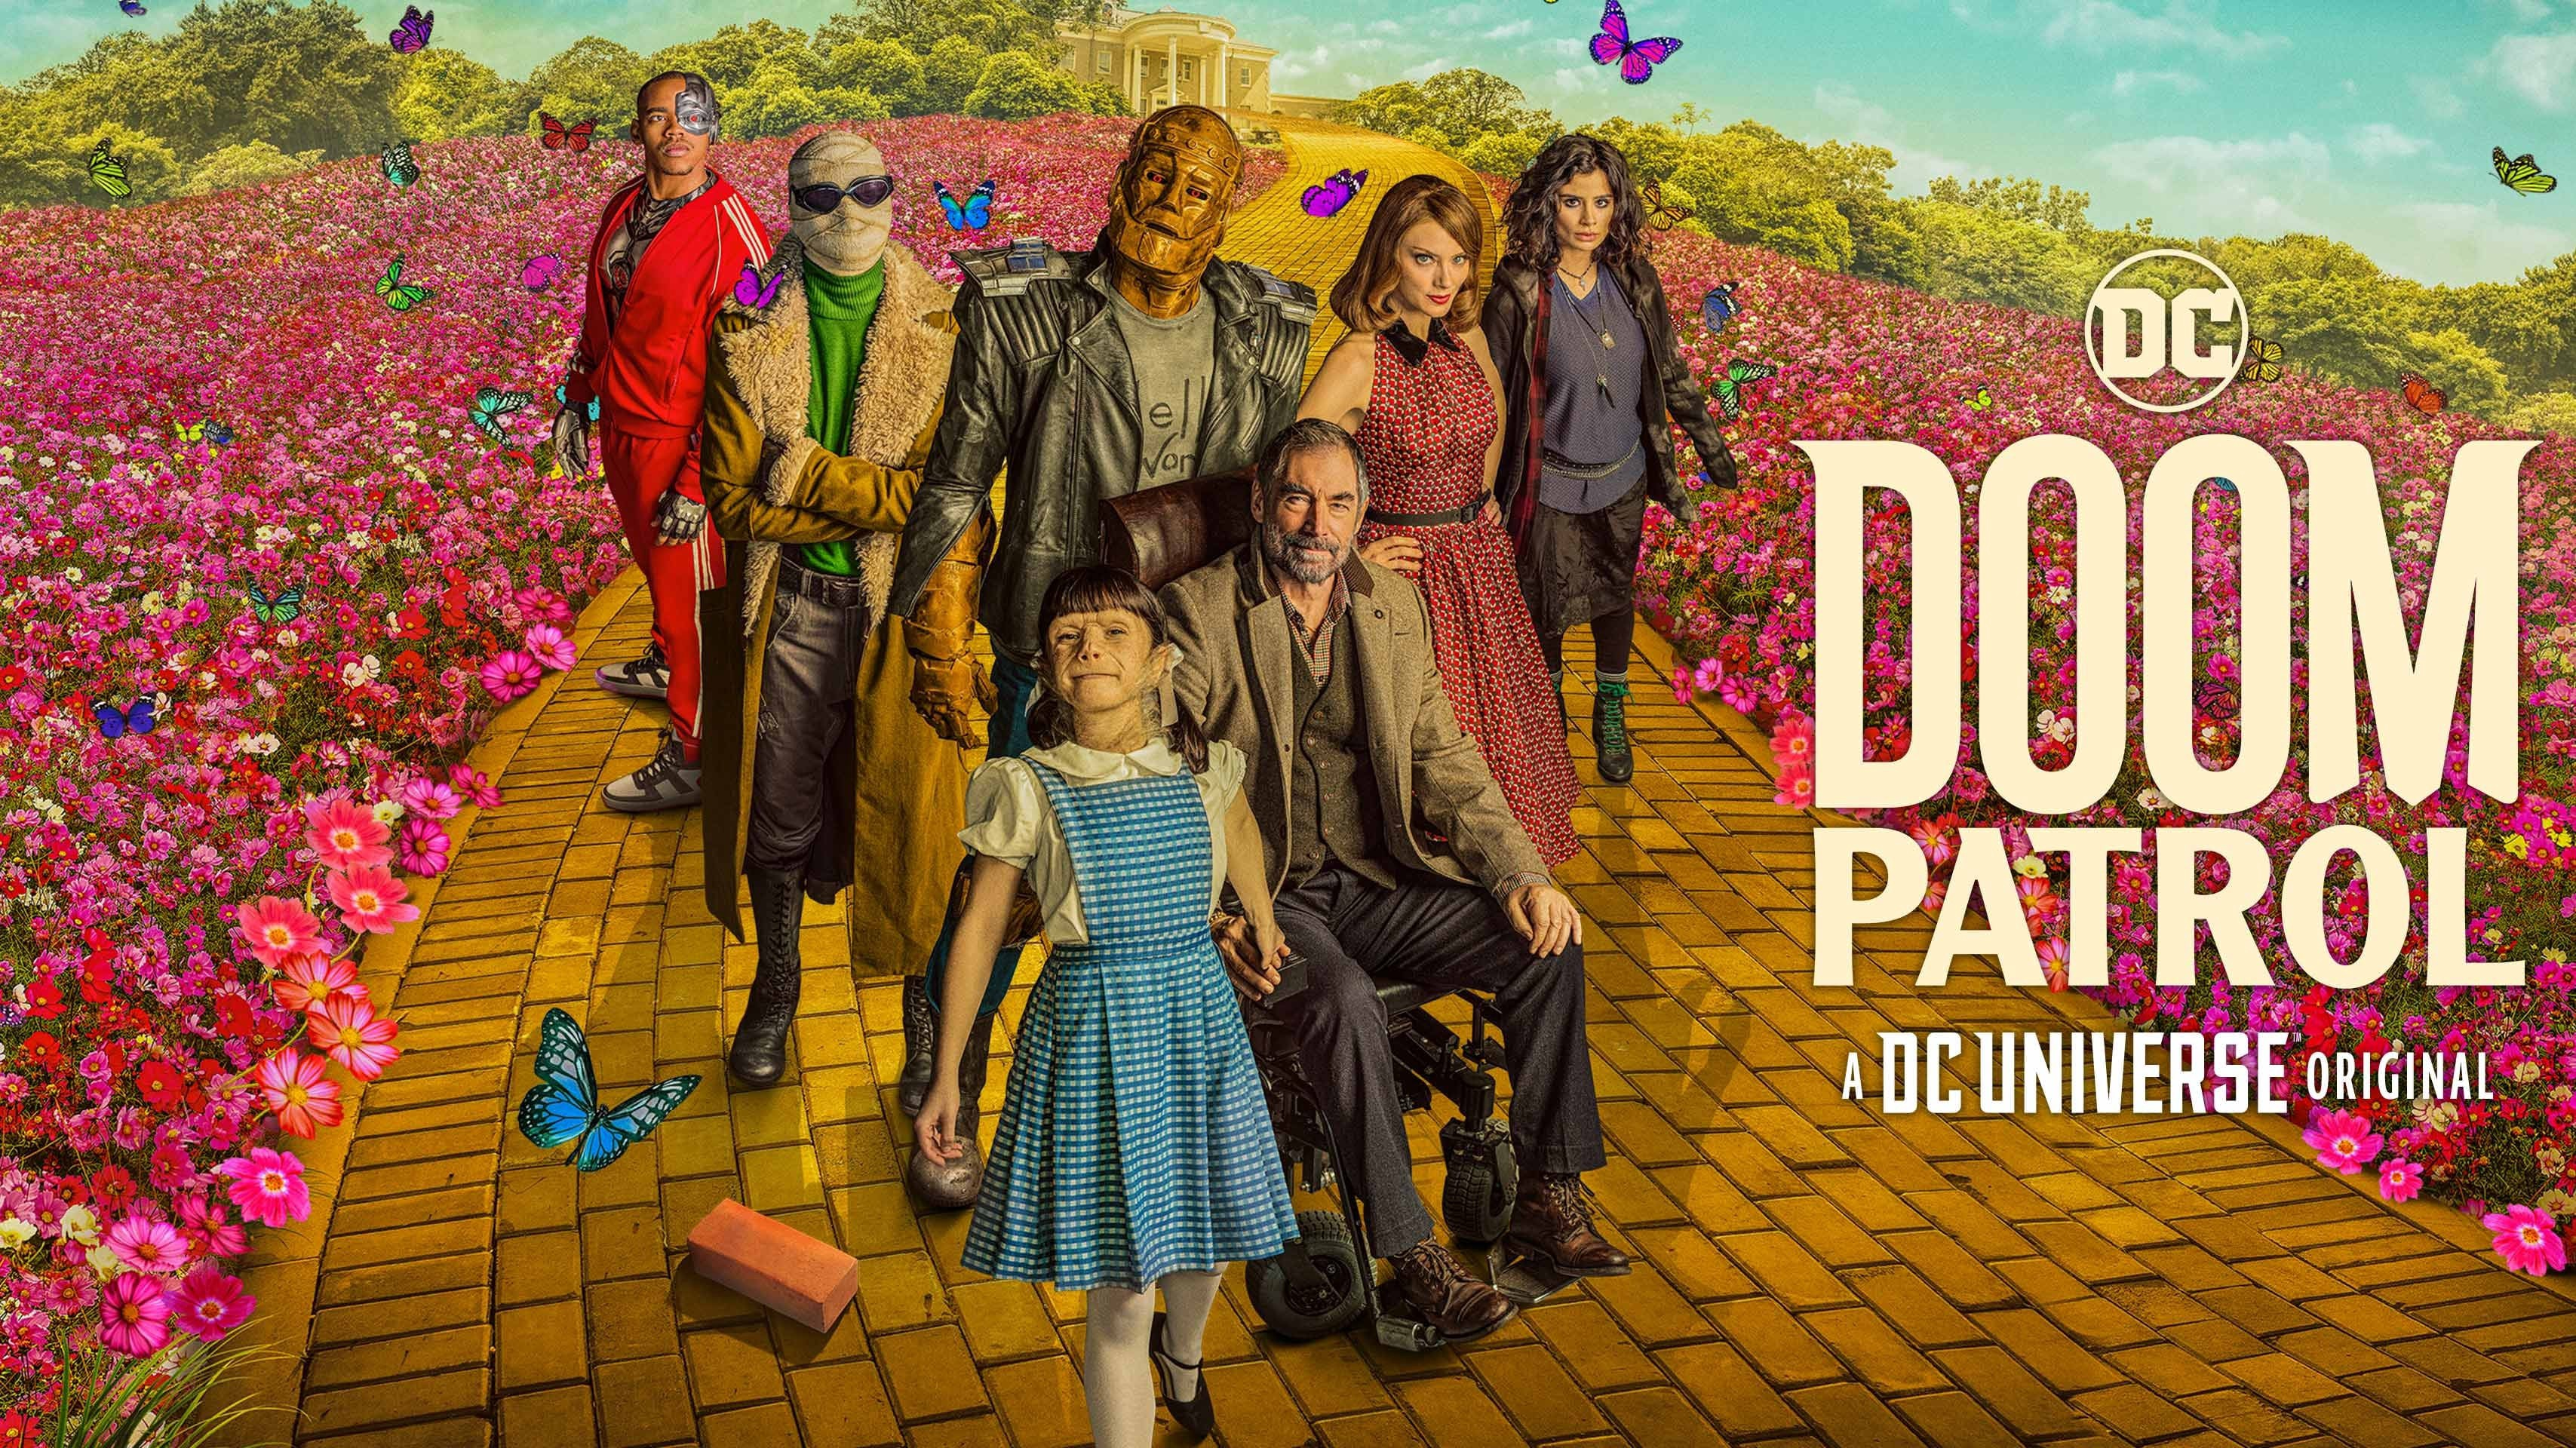 Doom Patrol Season 2 Episode 1 Fun Size Patrol Full Episodes By Search Party S3e1 Jun 2020 Medium